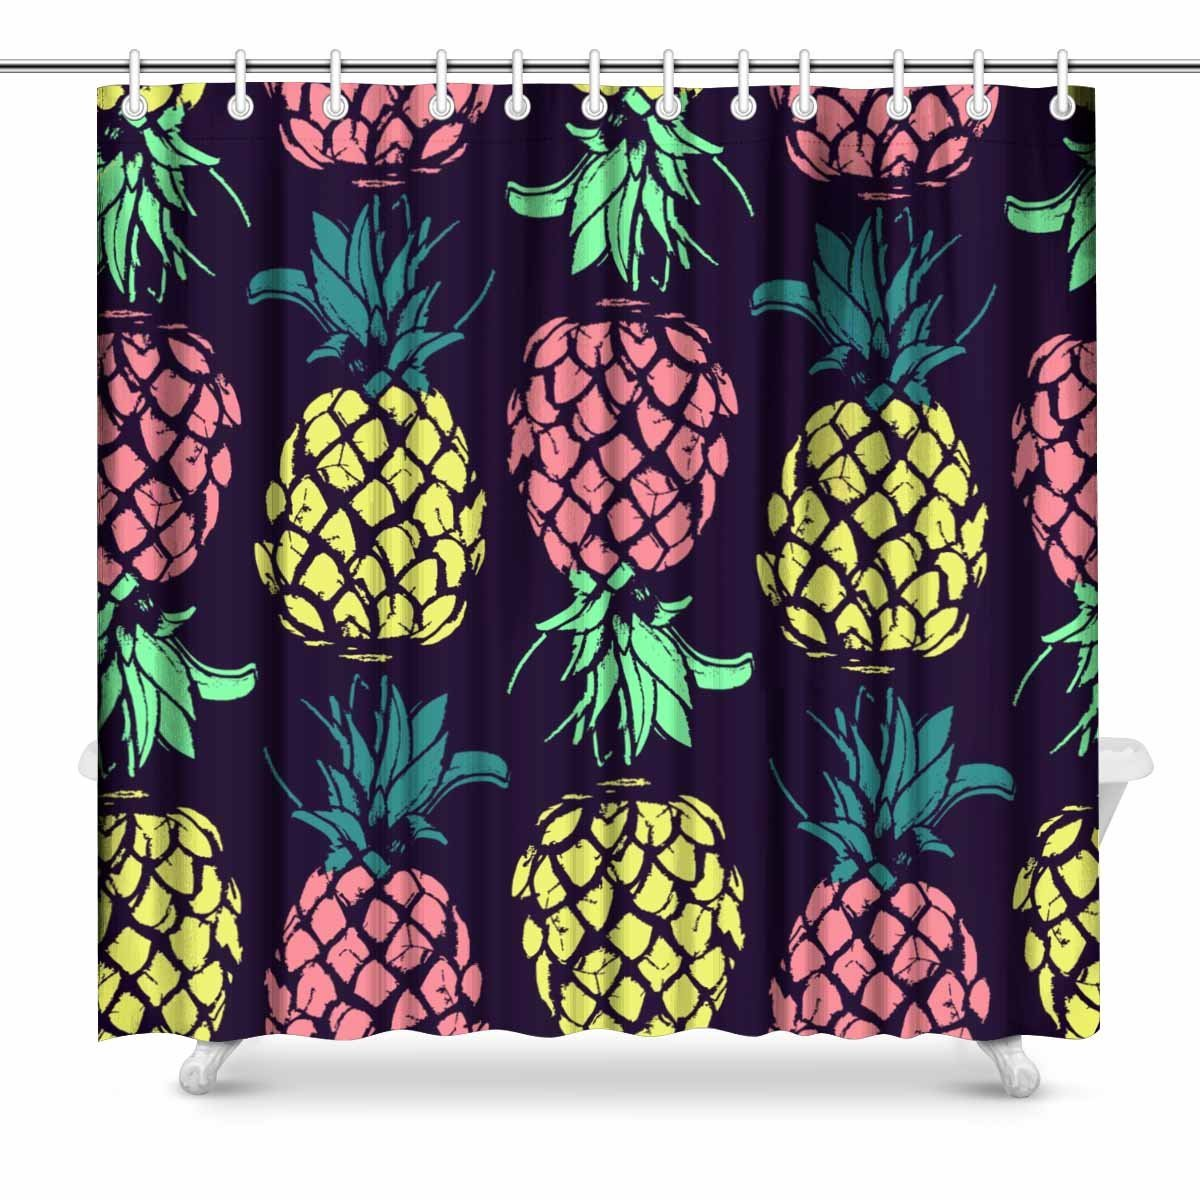 Botanical Flamingo Shower Curtain Colorful Pineapple